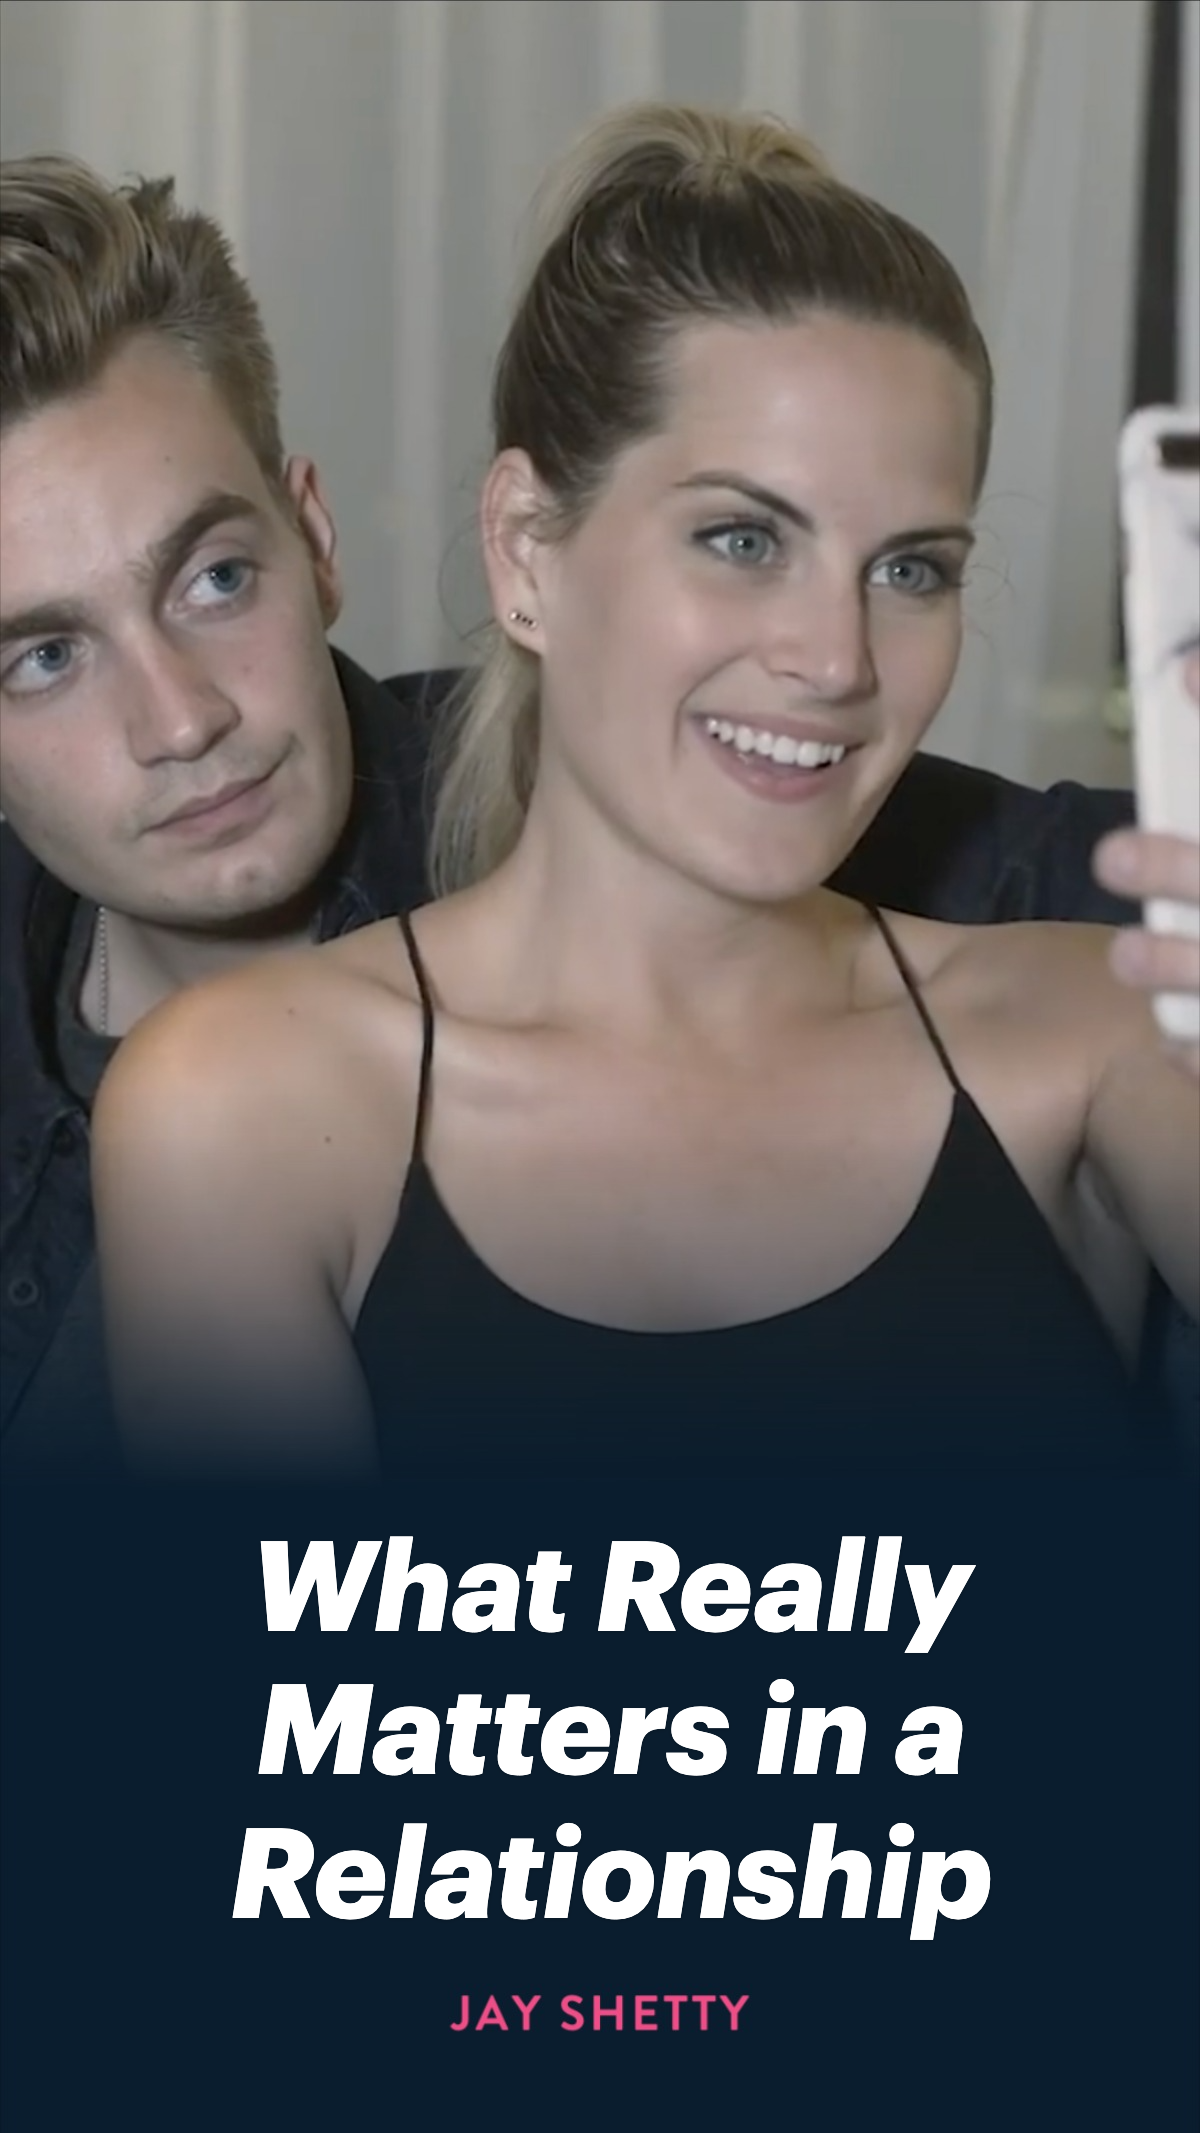 What Really Matters in a Relationship